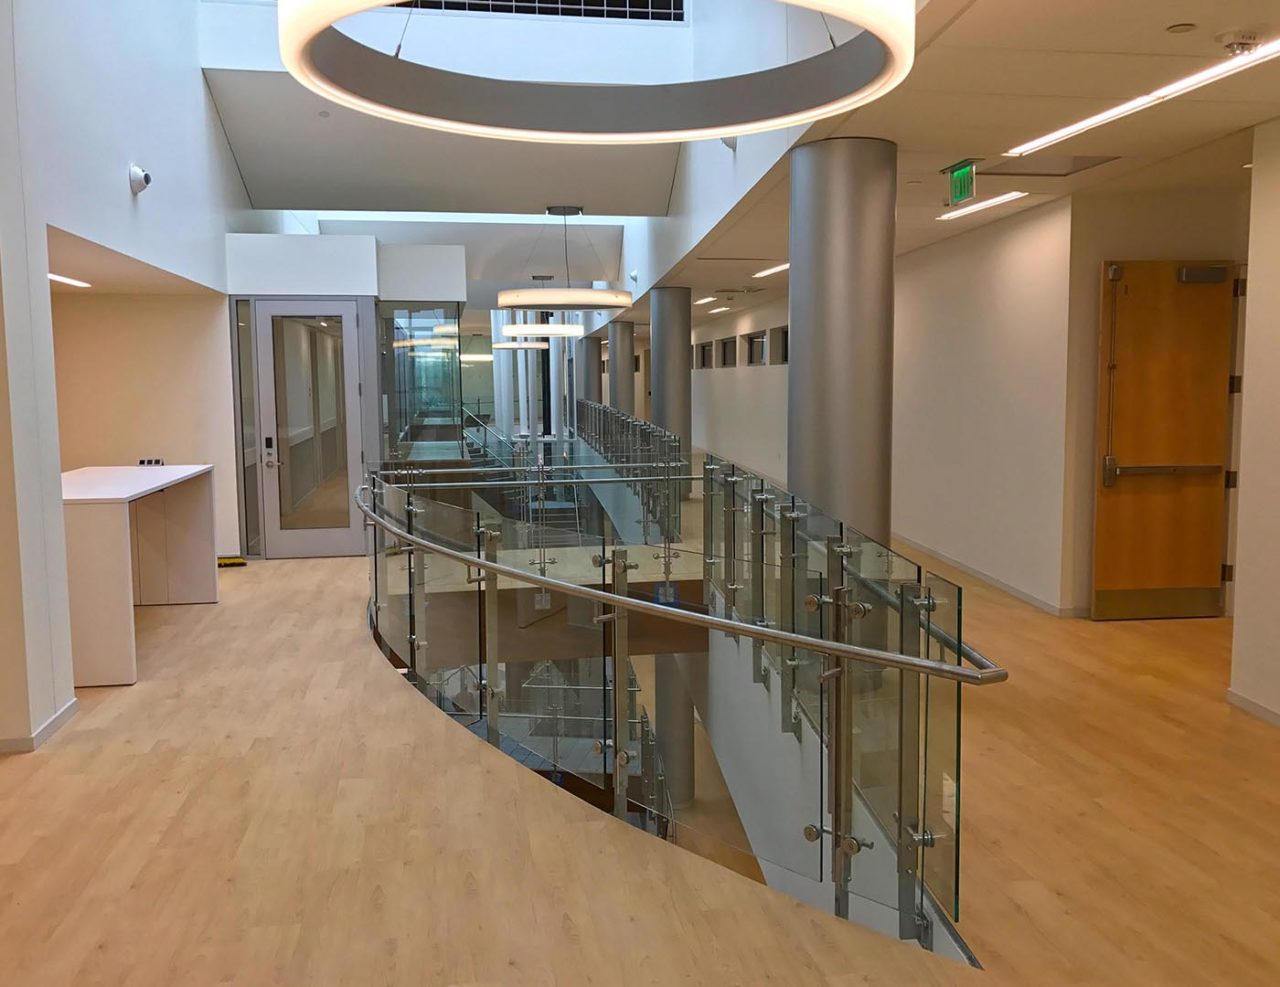 Overlooks feature a radius glass railing application with post-mounted stainless handrail